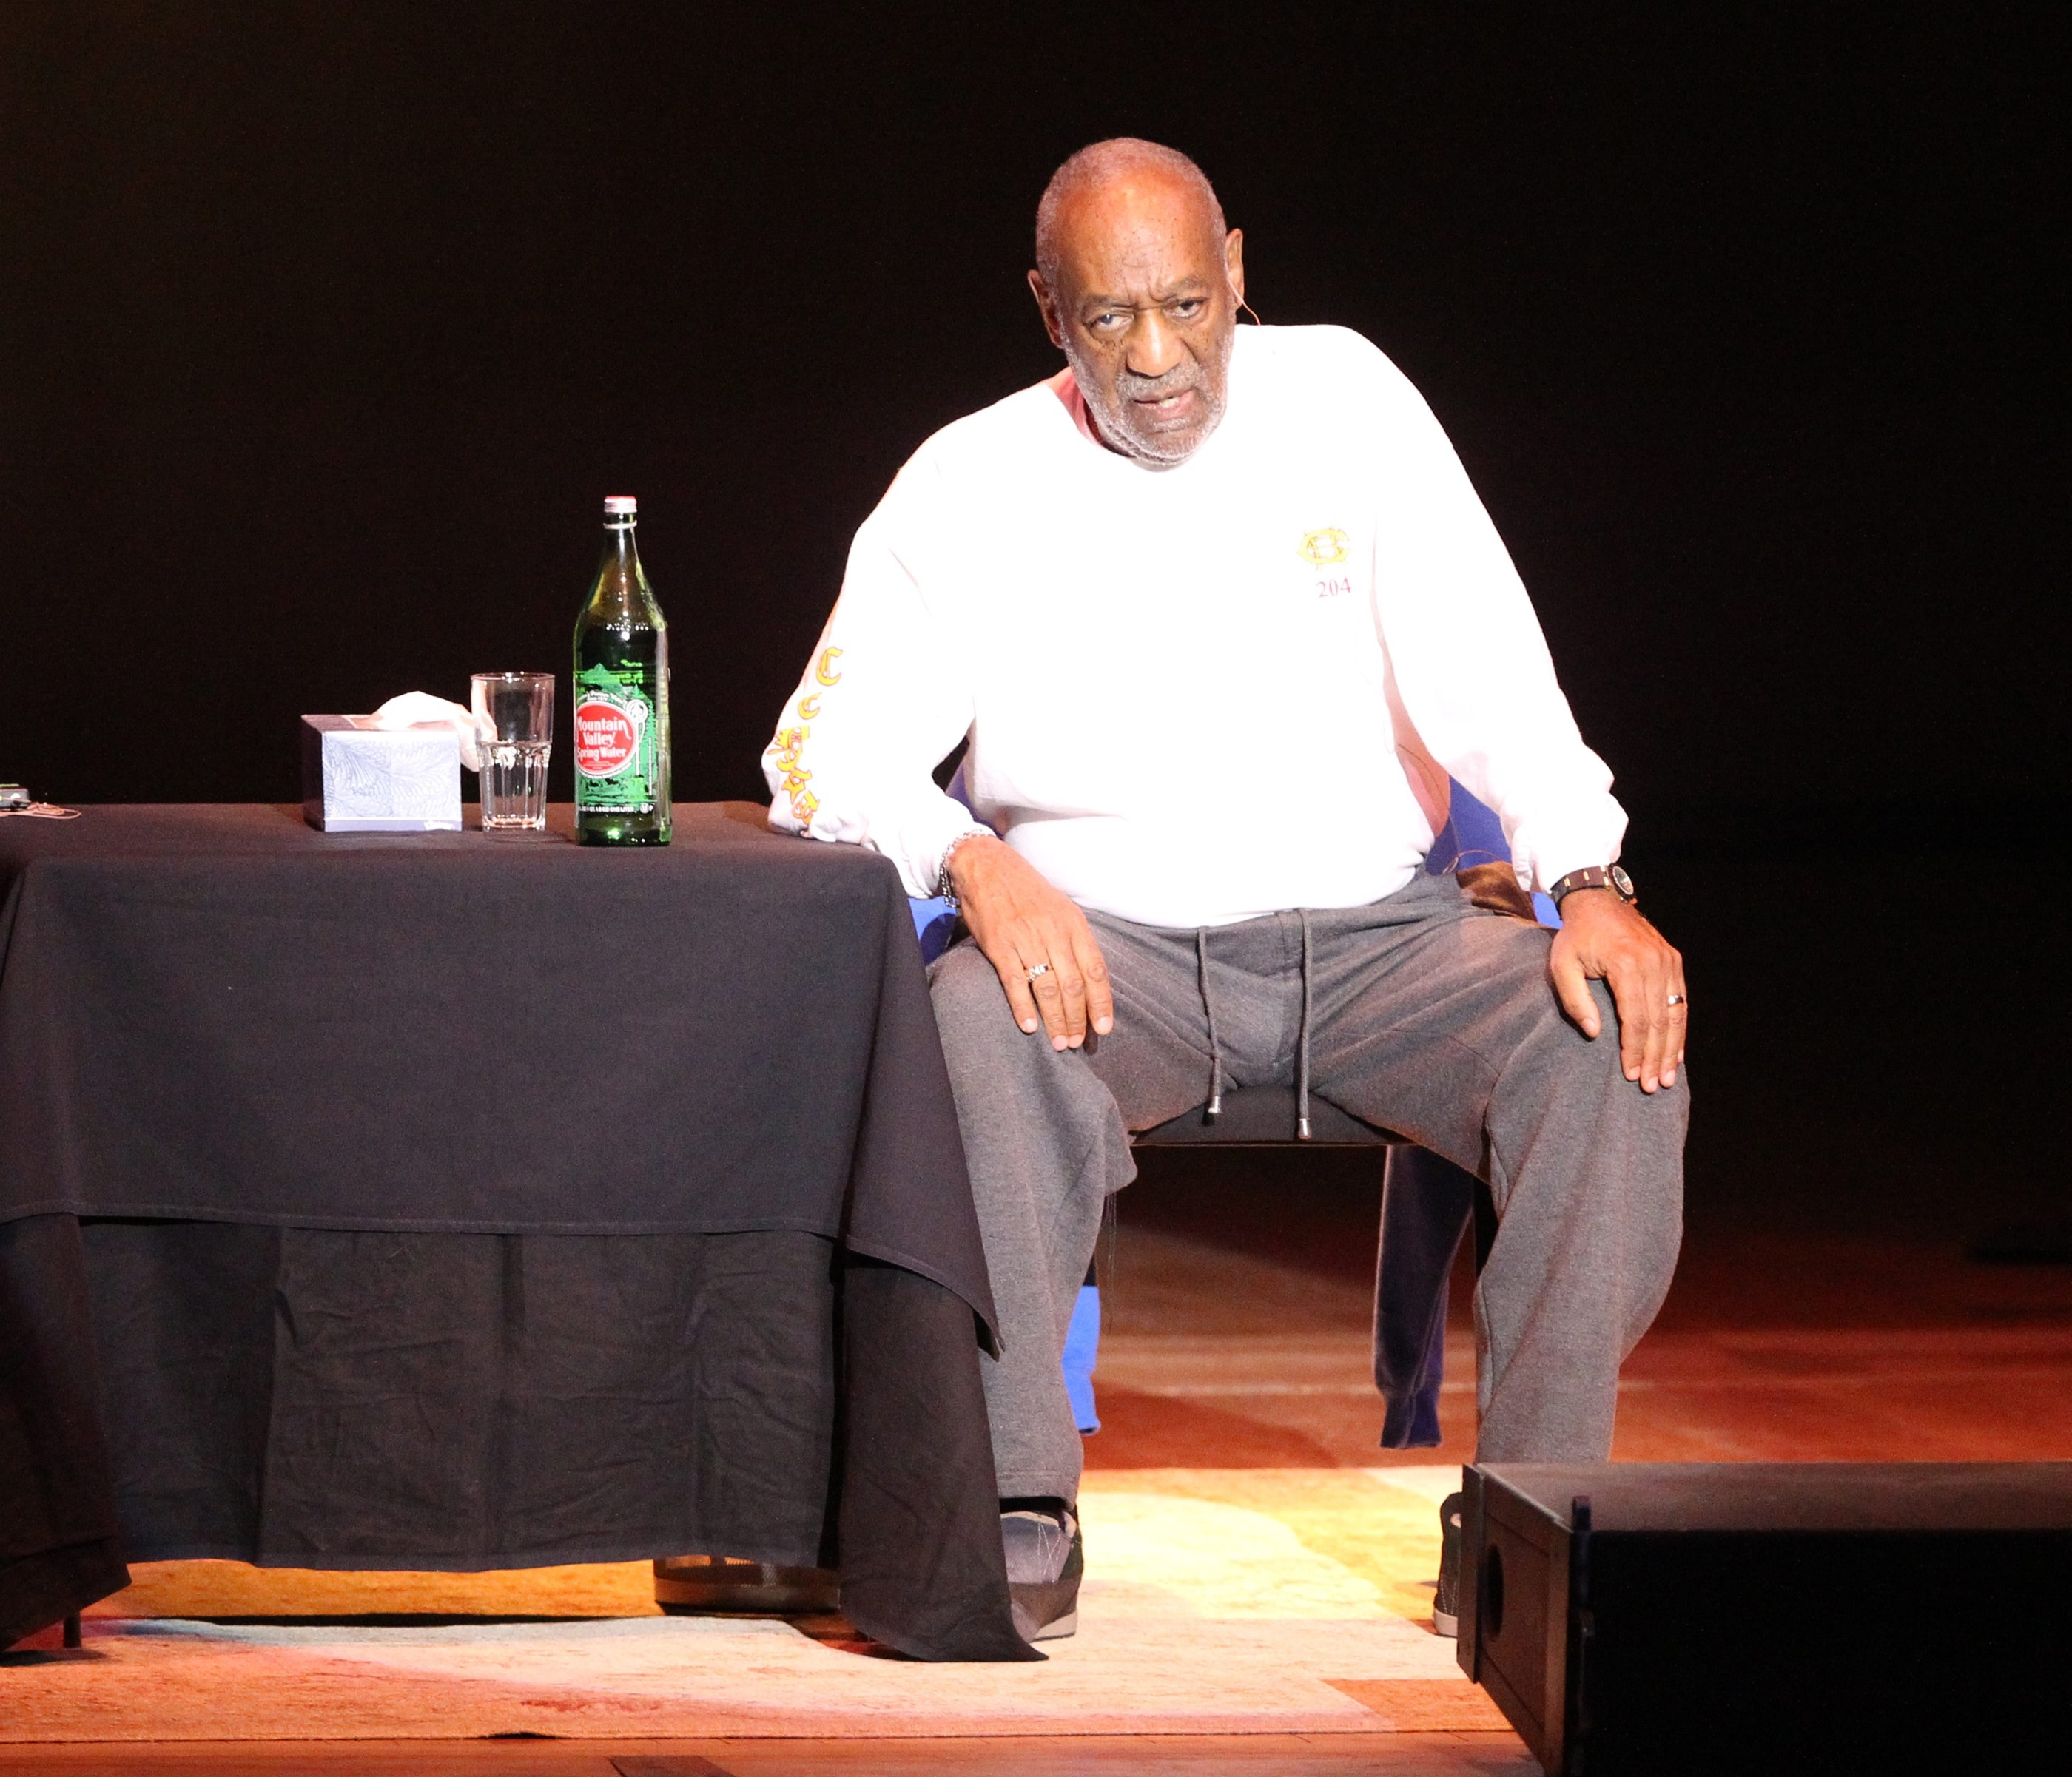 Bill Cosby sits in a chair center stage and tells funny stories while performing at  Kleinhans Music Hall in Buffalo,NY on March 15, 2013.  (James P. McCoy/Buffalo News)